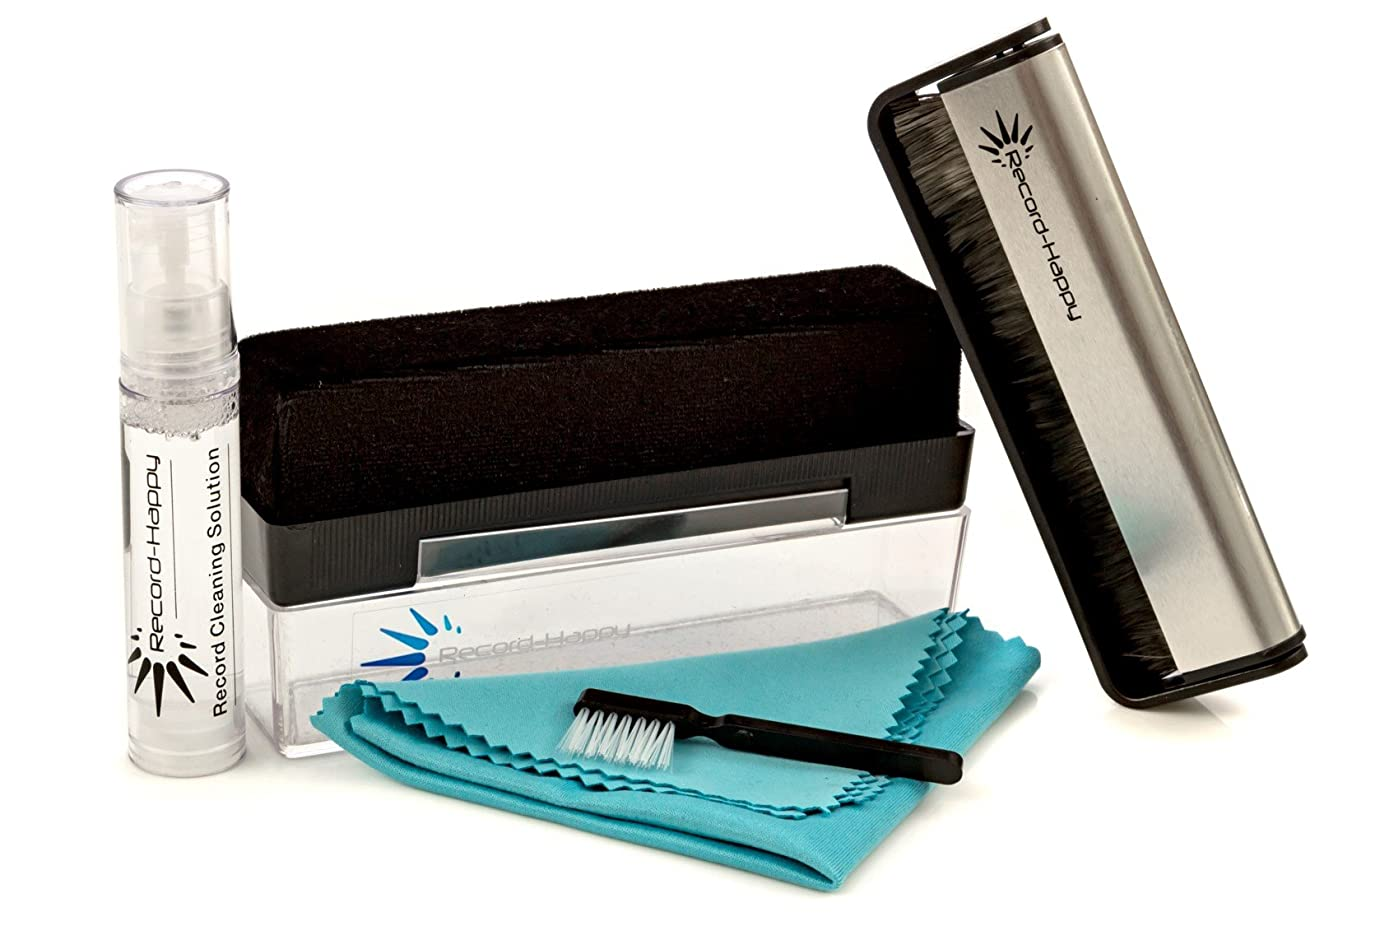 Vinyl Record Cleaning Brush Kit - Premium LP Maintenance Set by Record-Happy. Velvet, Anti-Static Carbon Fiber Brush, Microfiber Cloth and Stylus Cleaner. Keep your Valuable Album Collection like New!